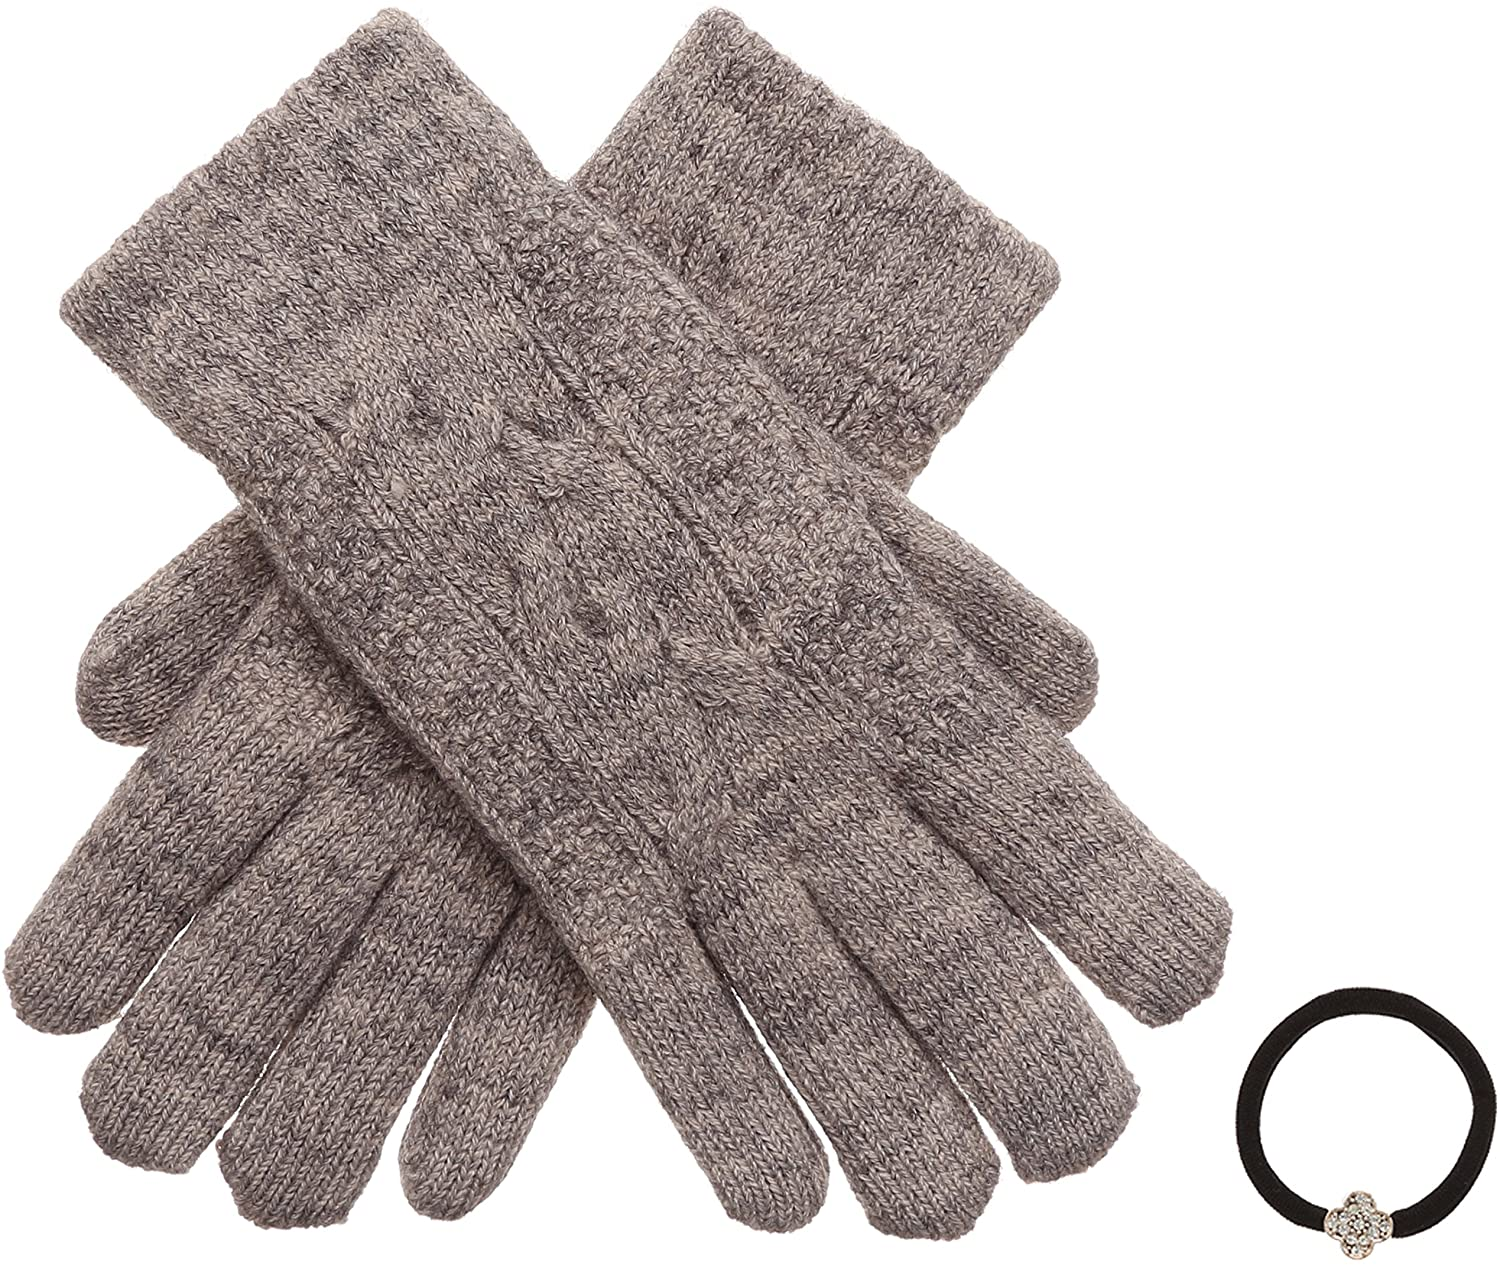 Women's Winter Premium Soft Knit Warm Faux Fur Lining Gloves with Hair Tie